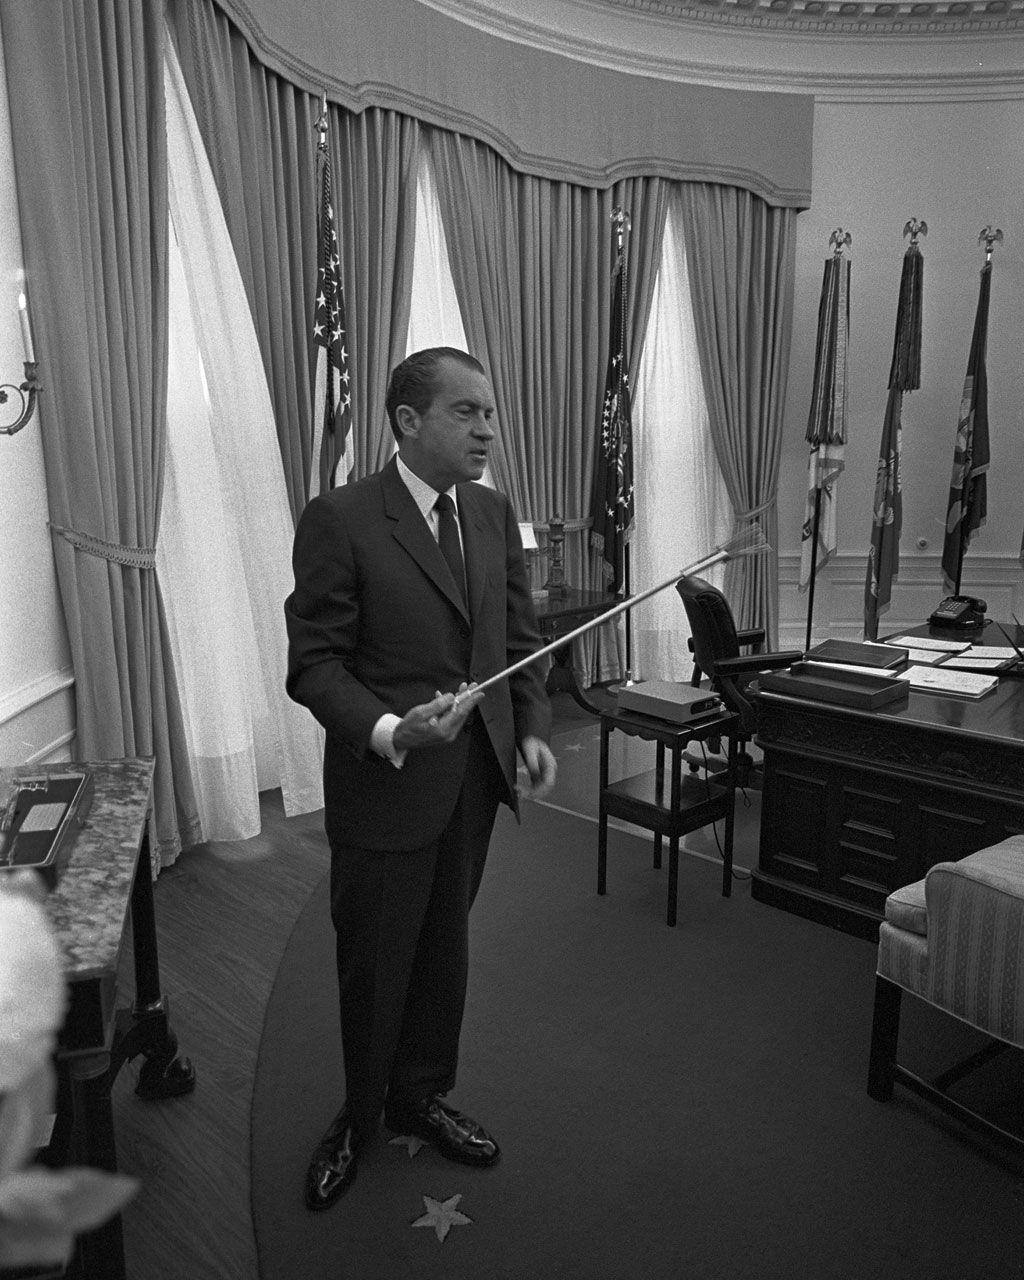 nixon office. President Nixon Standing In The Oval Office Holding Set Of Tongs Used By Astronauts During